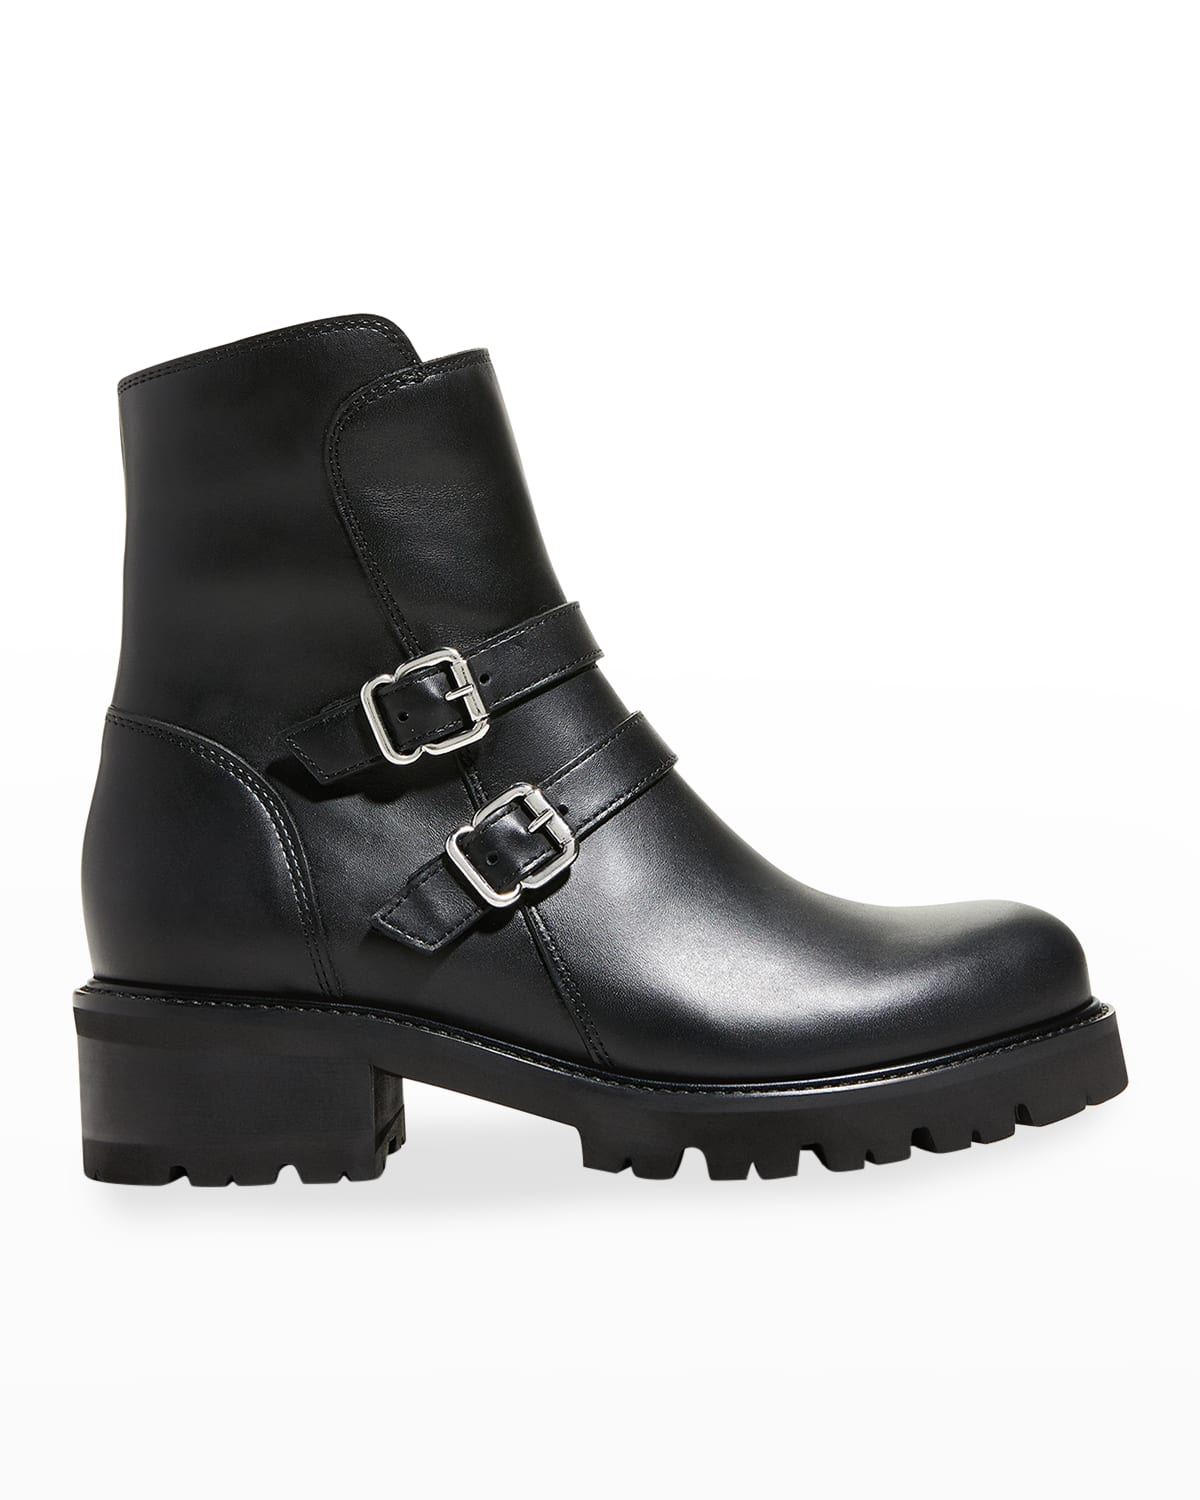 Carly Buckle Leather Short Moto Booties